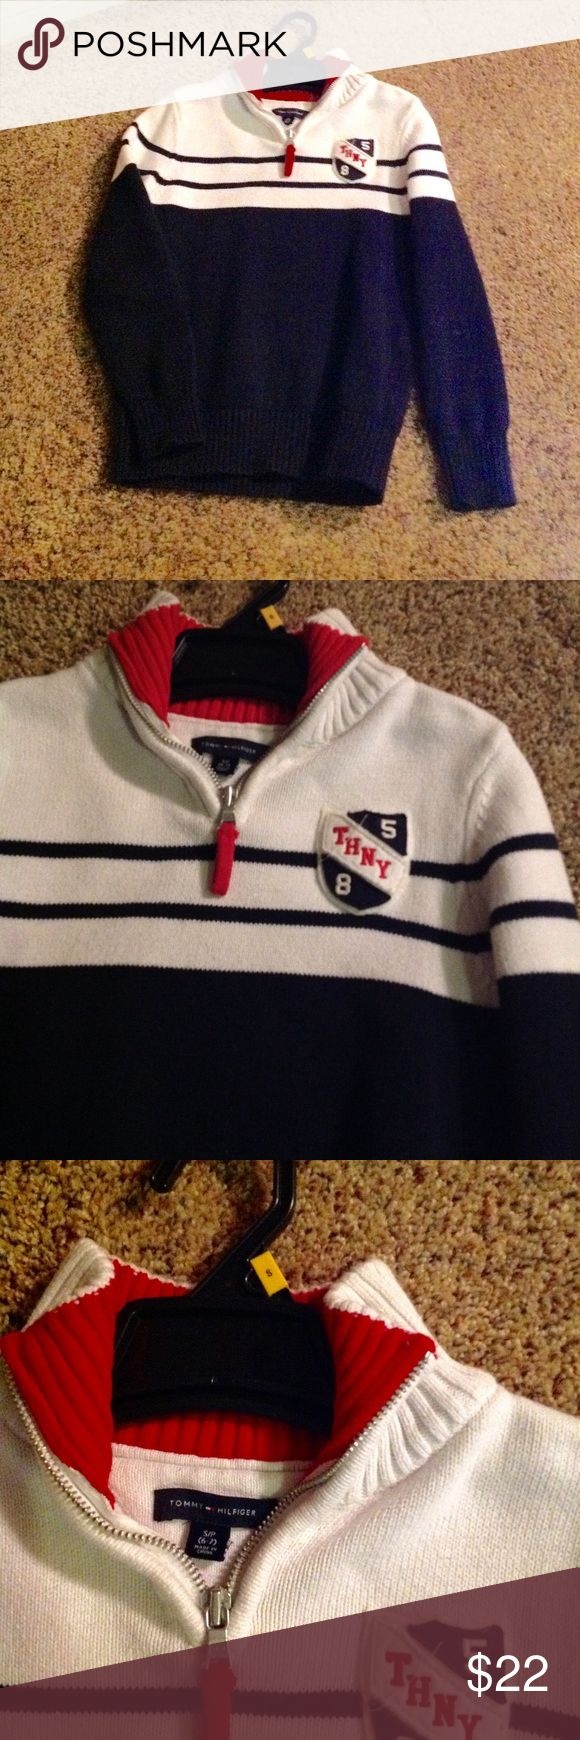 Sweater Sweater Tommy Hilfiger almost new! Size 6-7 Tommy Hilfiger Shirts & Tops Sweaters